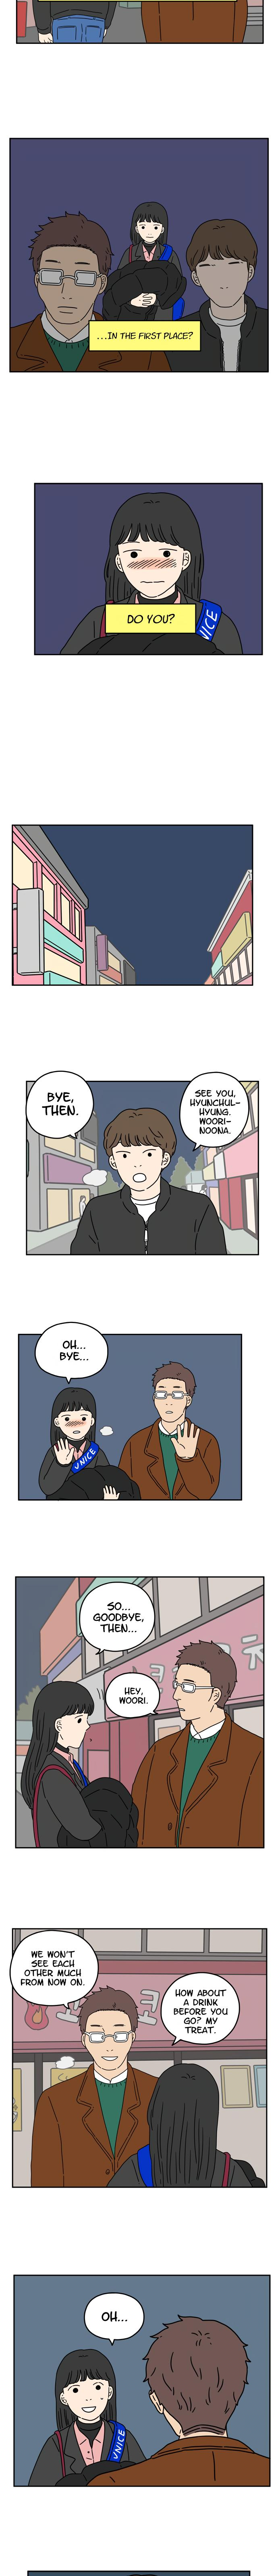 The Year We Turned 29 Chapter 31: I Fall In Love Too Easily (1/2) page 5 - Mangakakalots.com